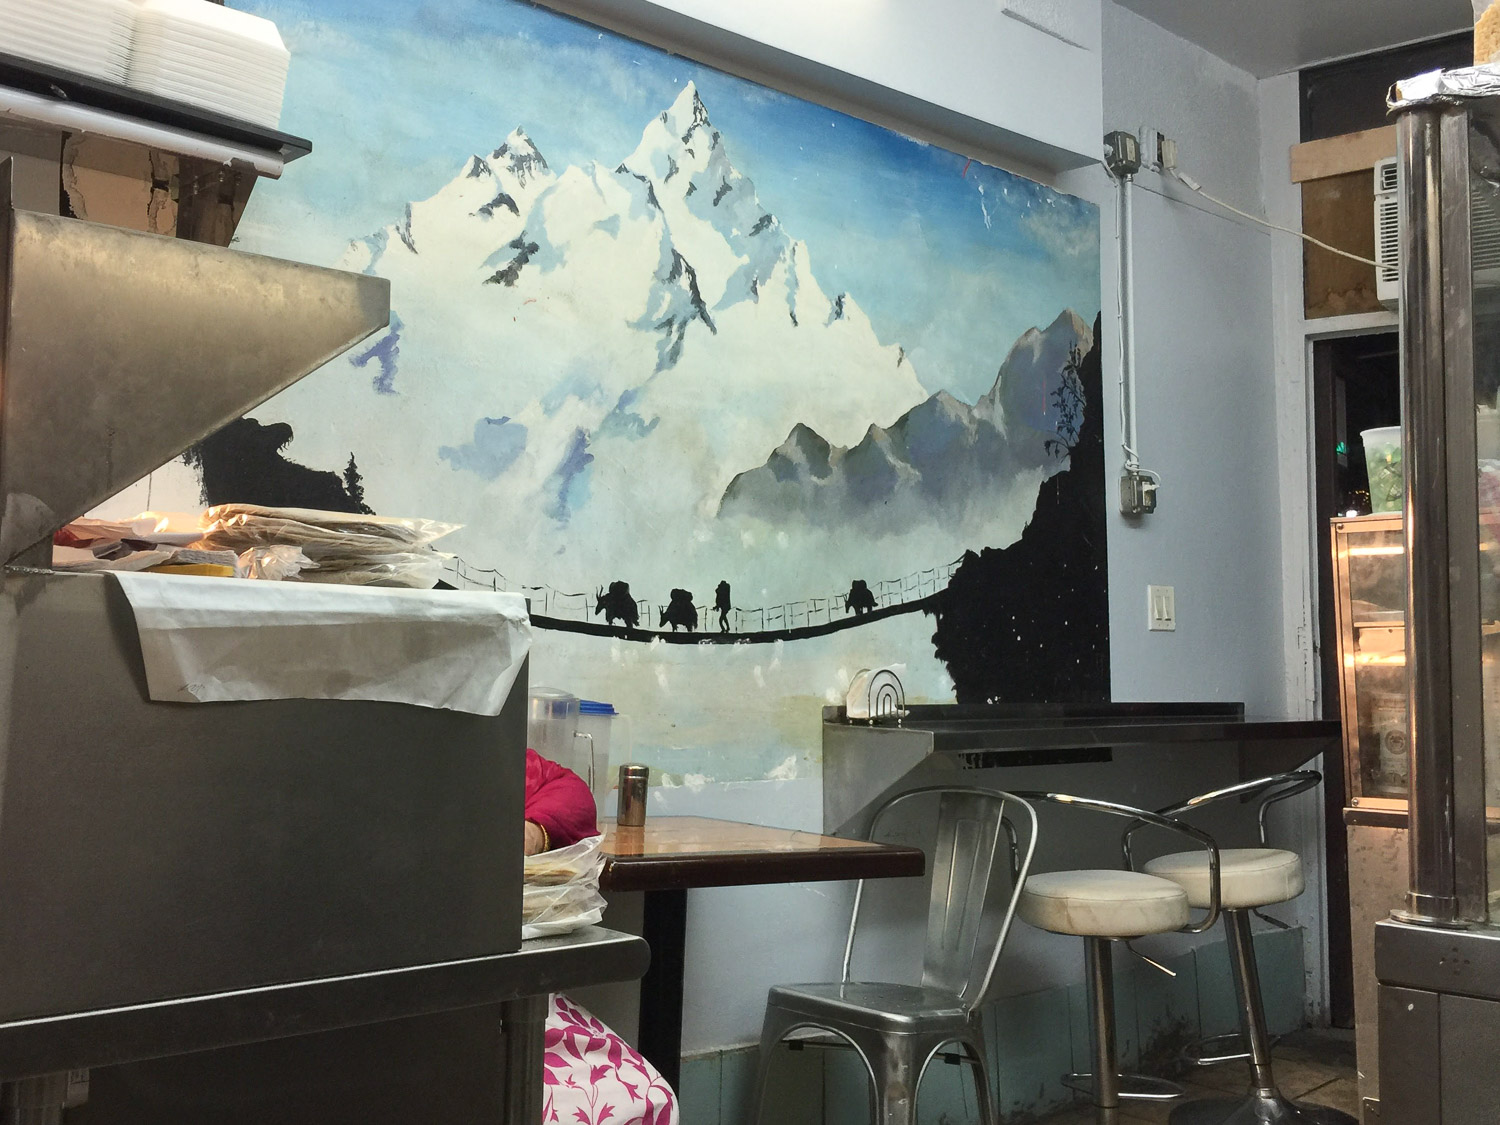 Tawa Roti's kitchen and dining room is one long corridor-like space. I love the Himalayan mural.